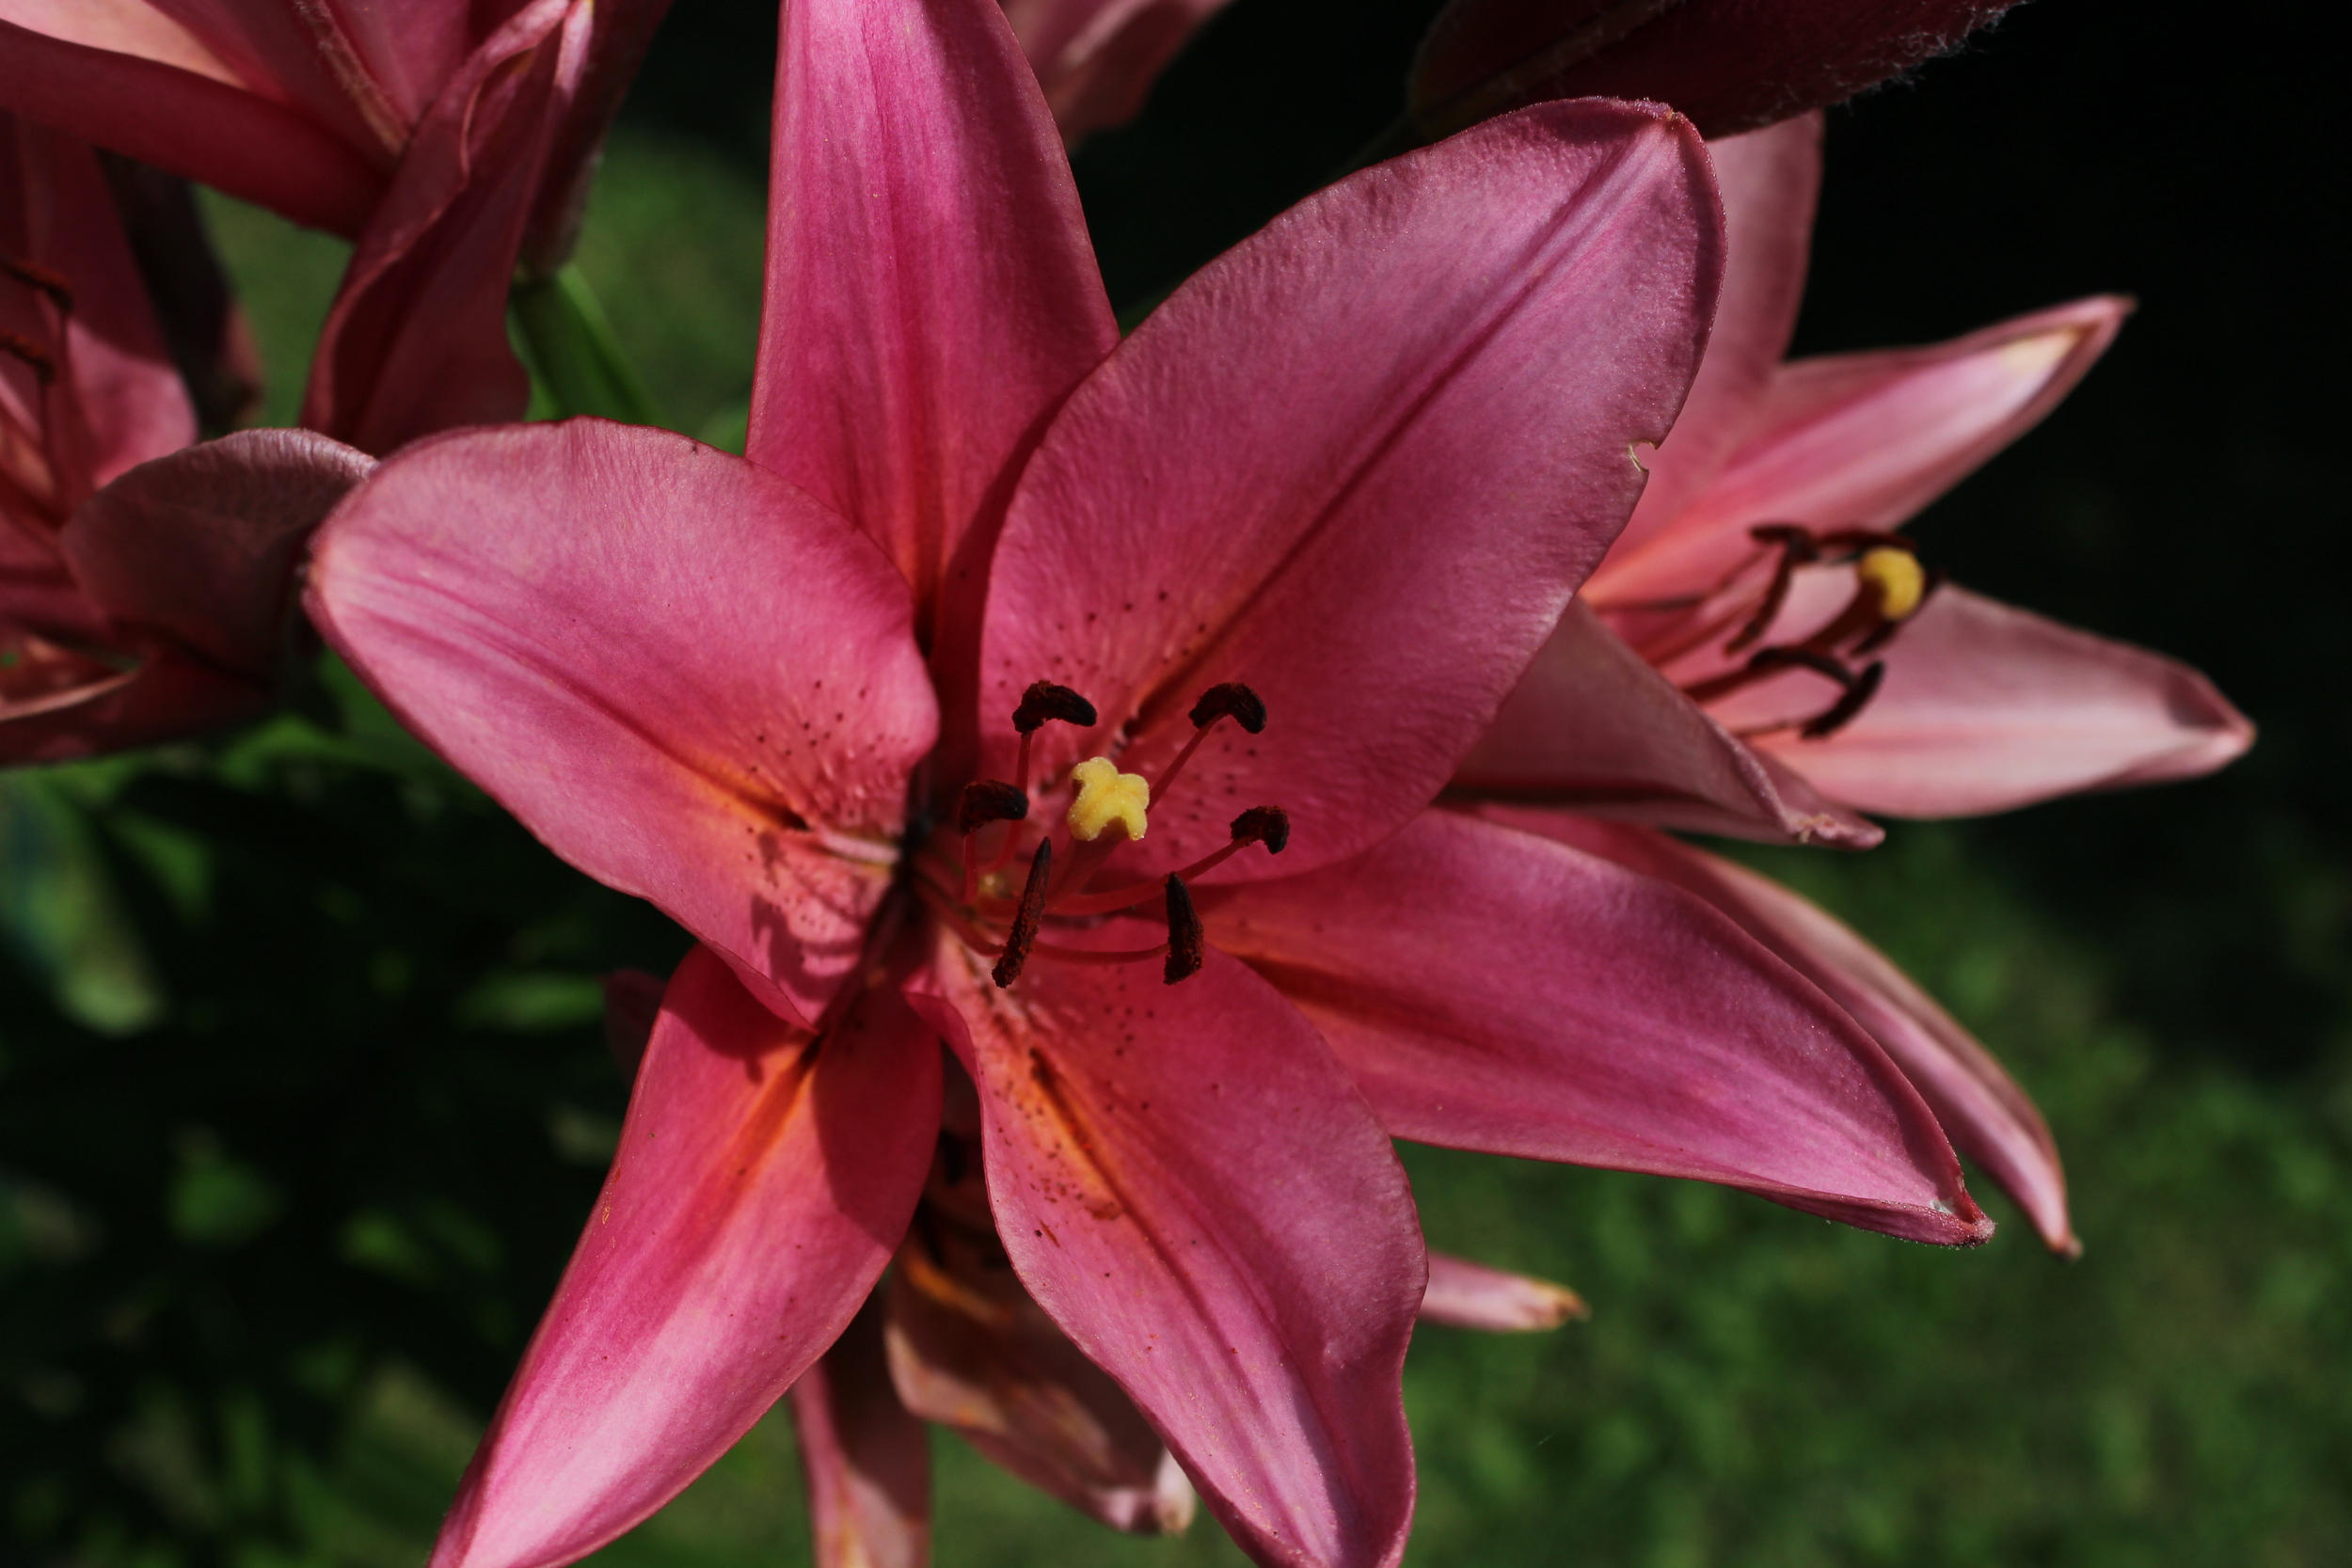 A pink/salmon colored lilly.